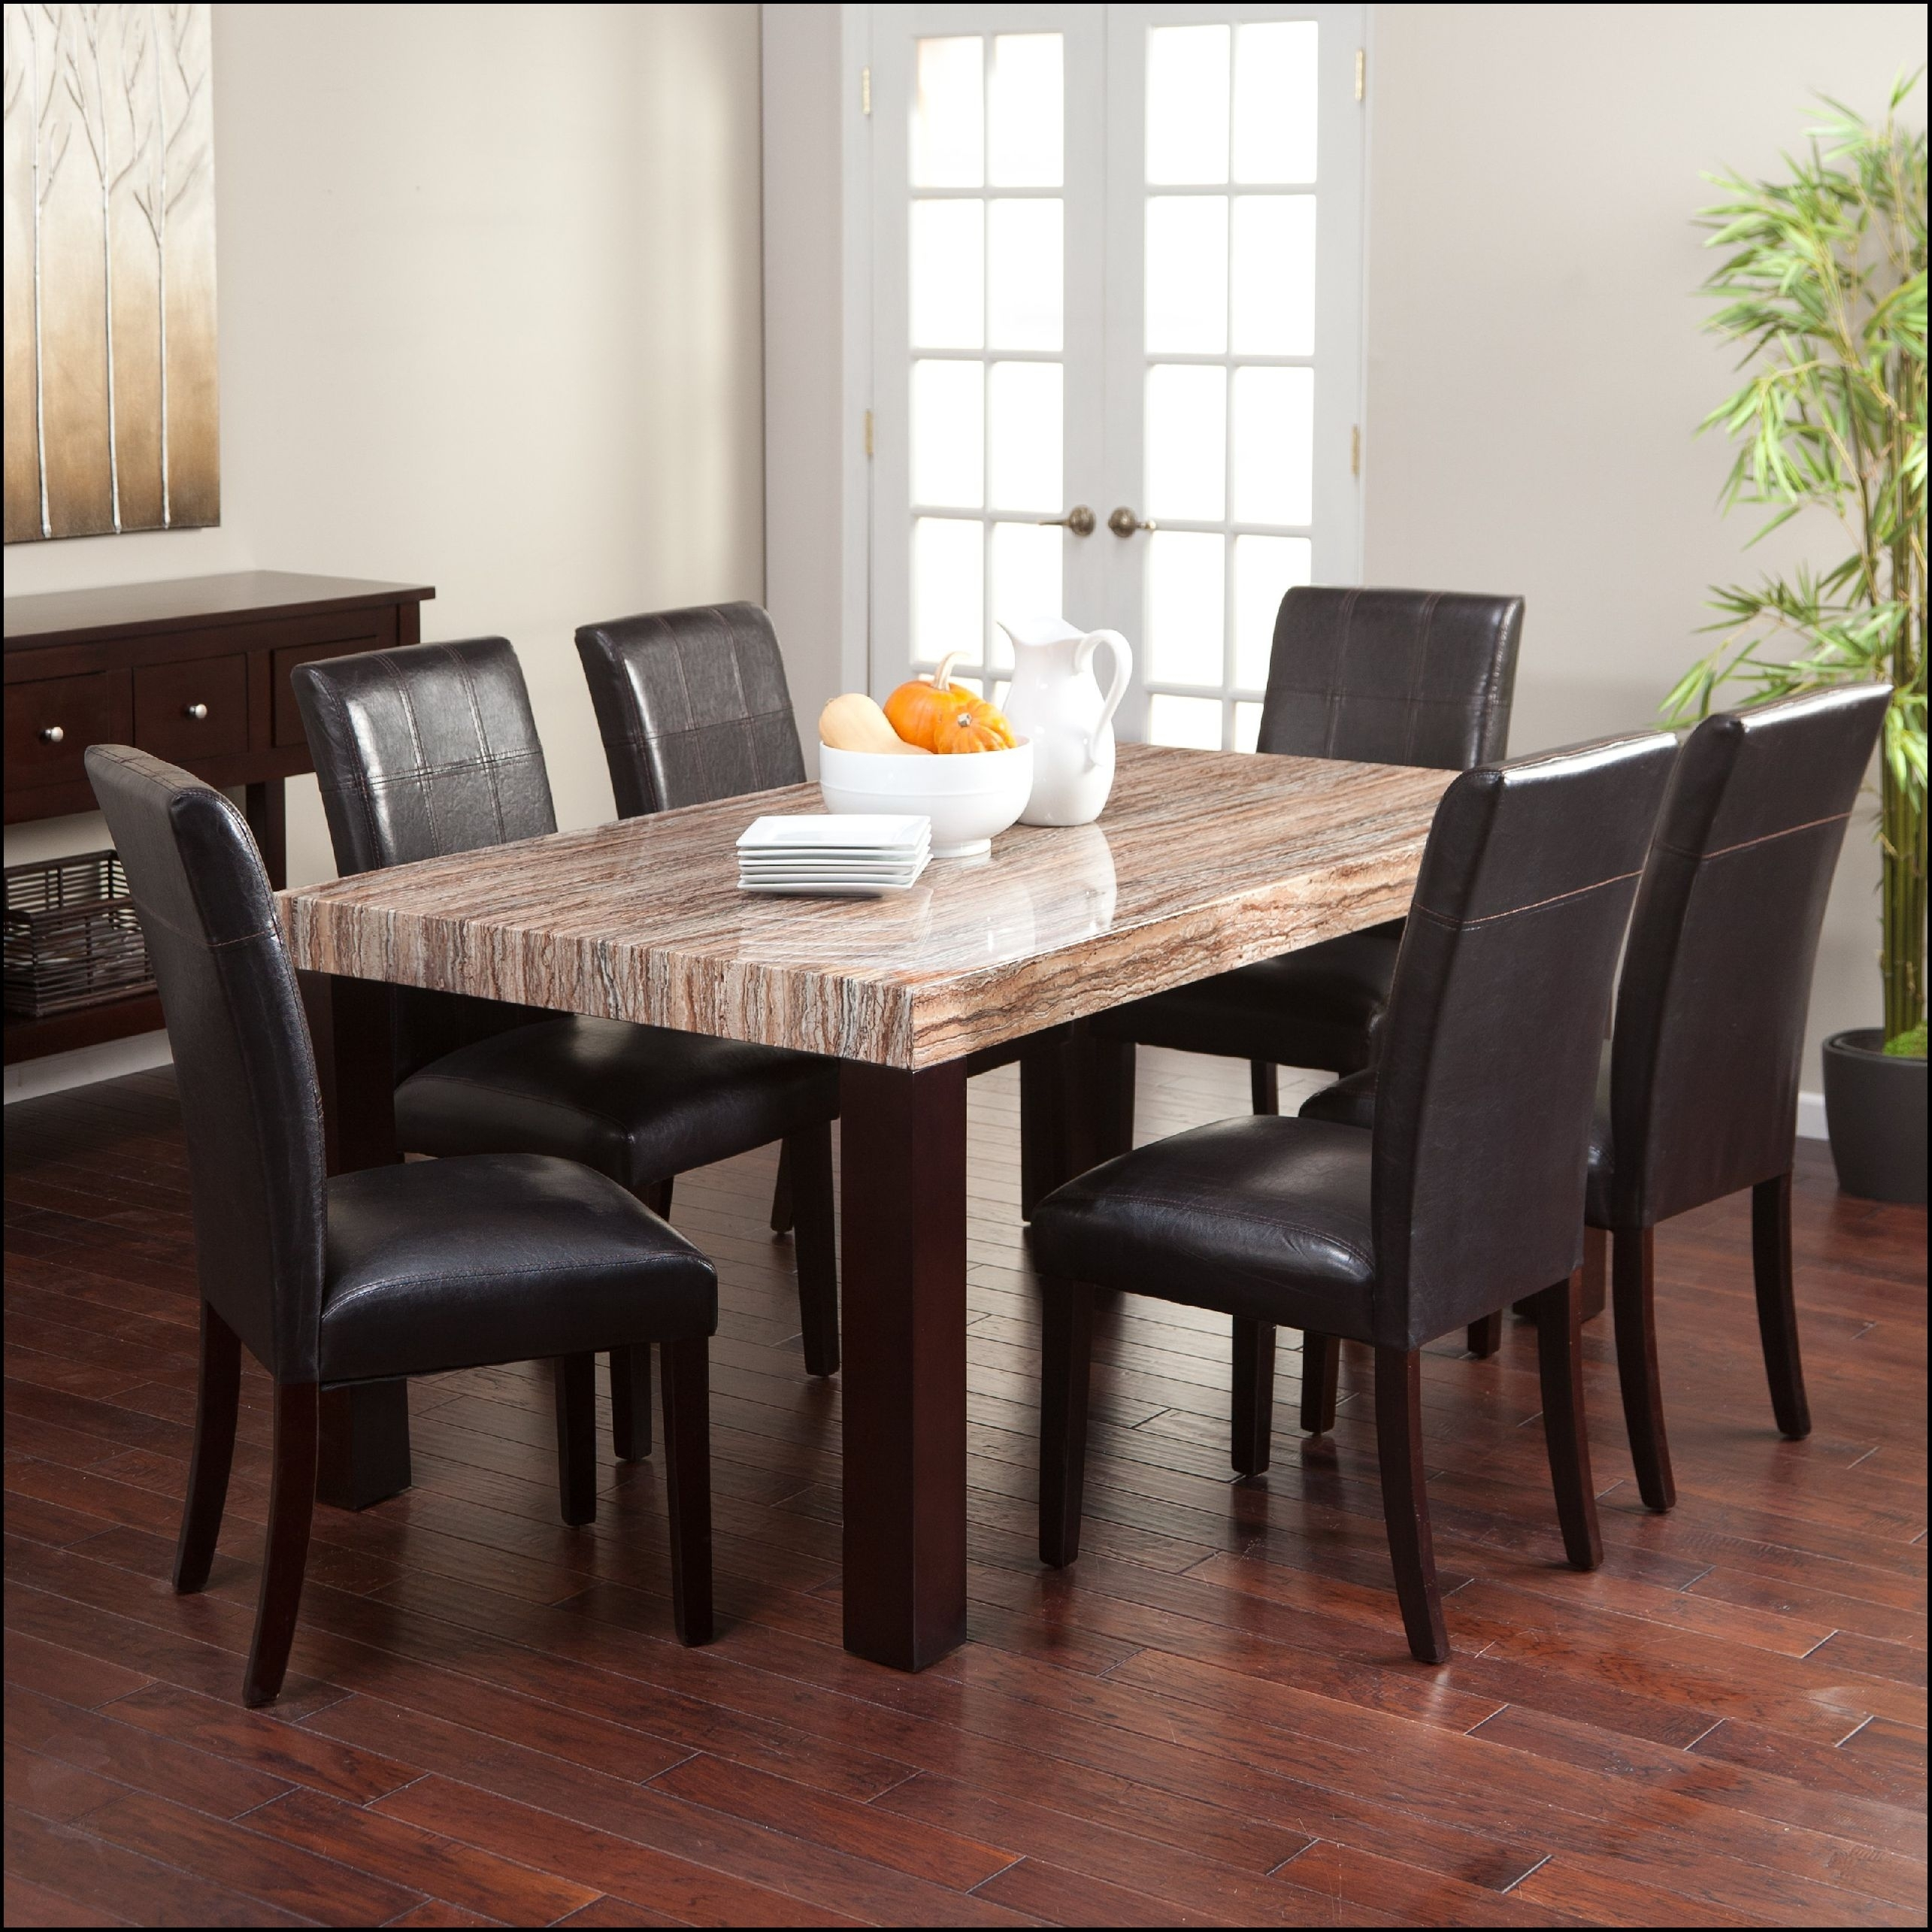 Great Kitchen Table And Stools Set | Sitiwhitegroook Within 2018 Palazzo 3 Piece Dining Table Sets (Image 10 of 20)